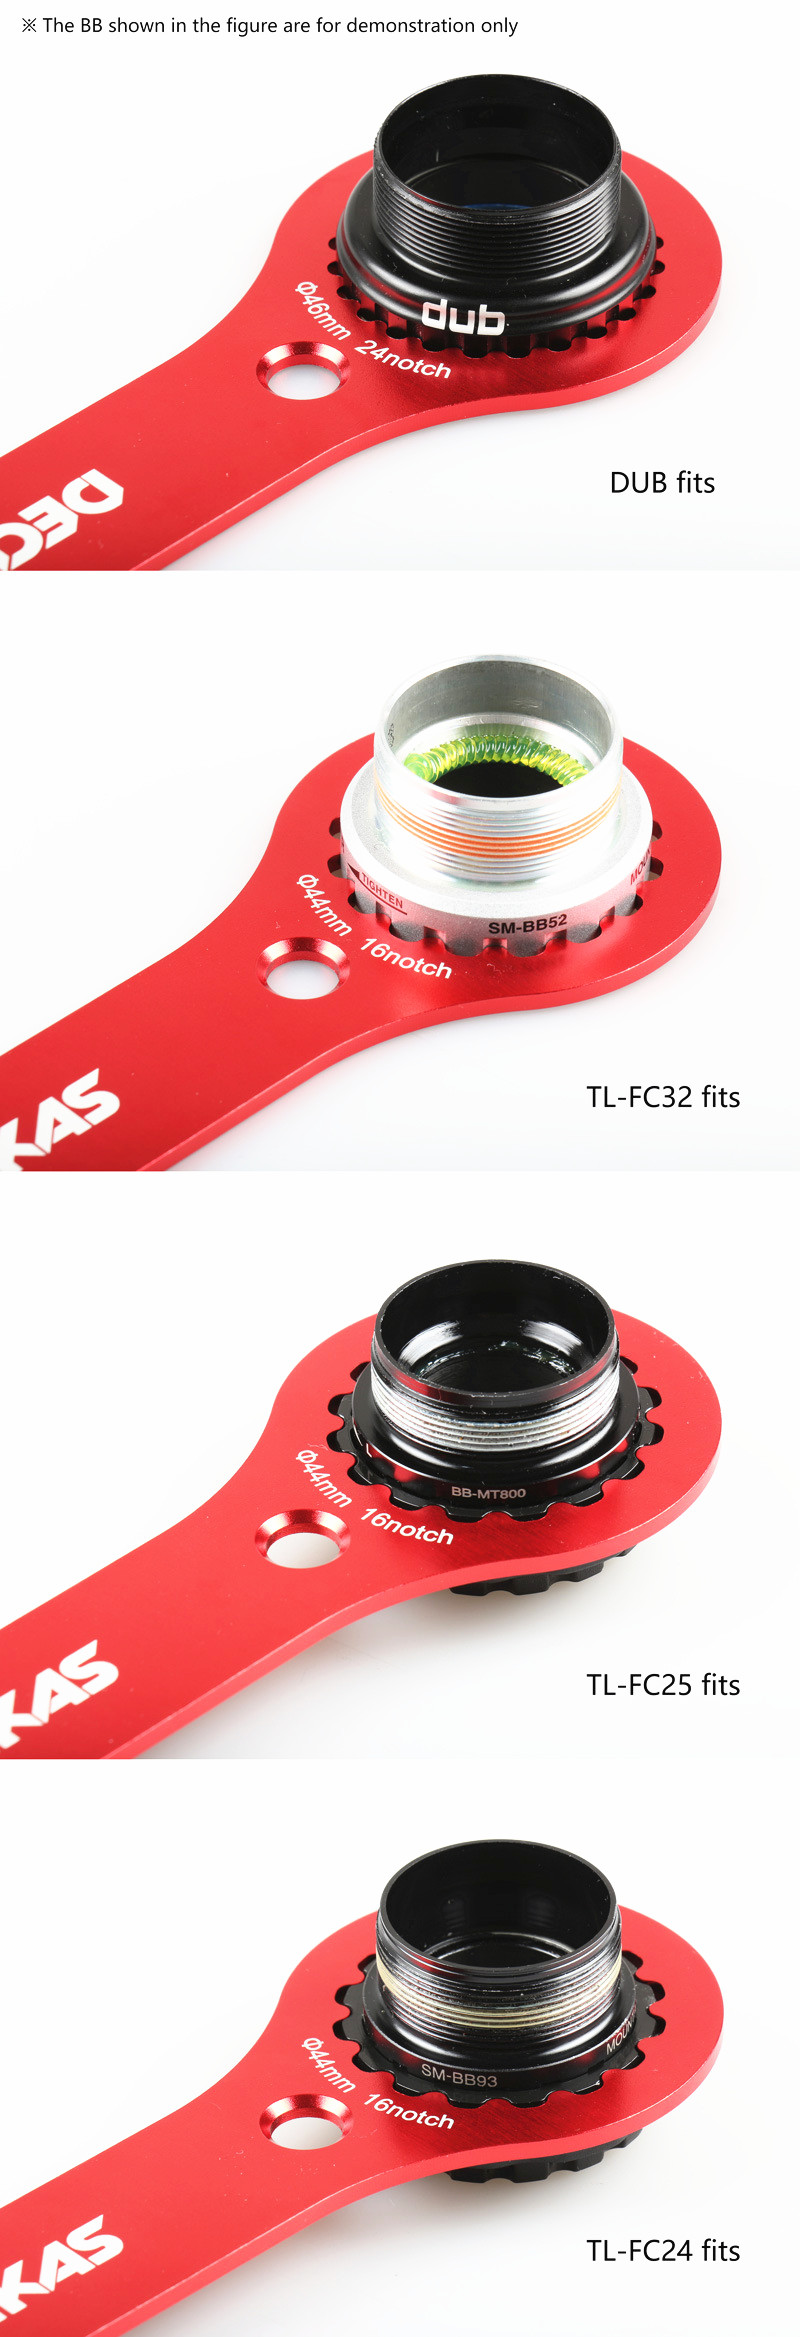 Bicycle Aluminum Alloy Axis Wrench Tool Dub//TL-FC32 25 24 Multifunctional BB Wrench Tool Original